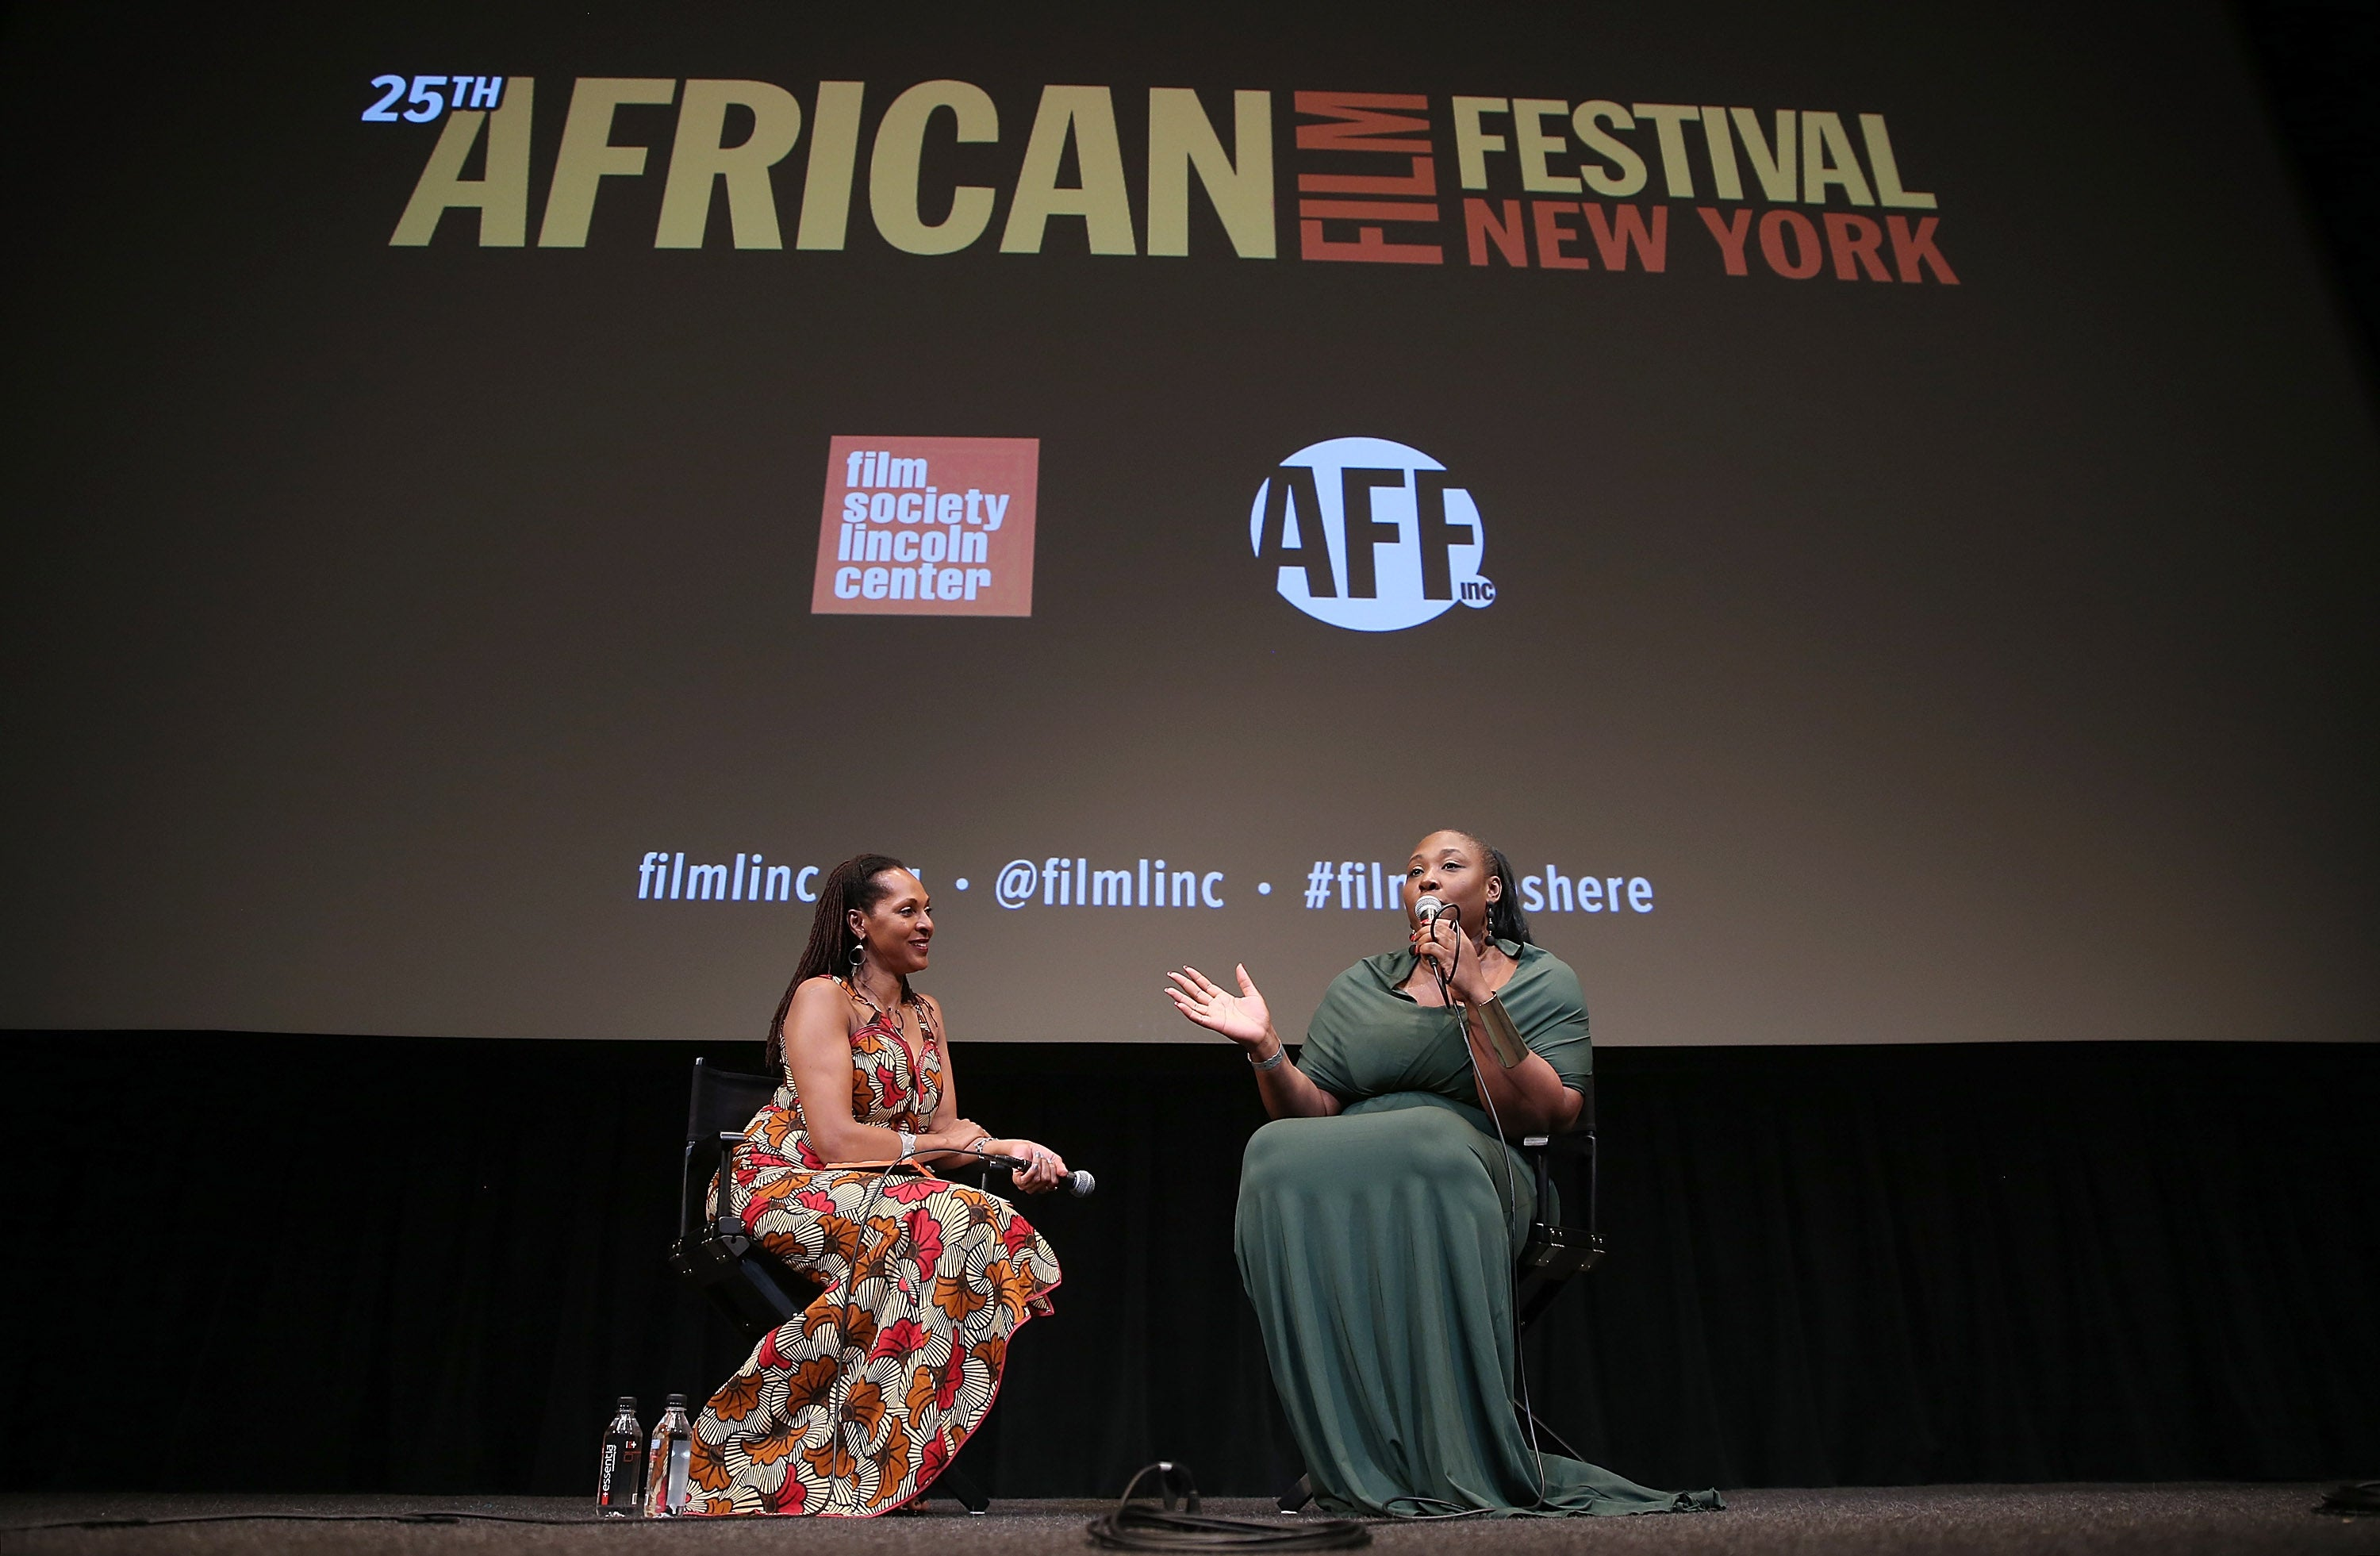 The 2018 New York African Film Festival Passes The Baton To A New Generation Of African Storytellers